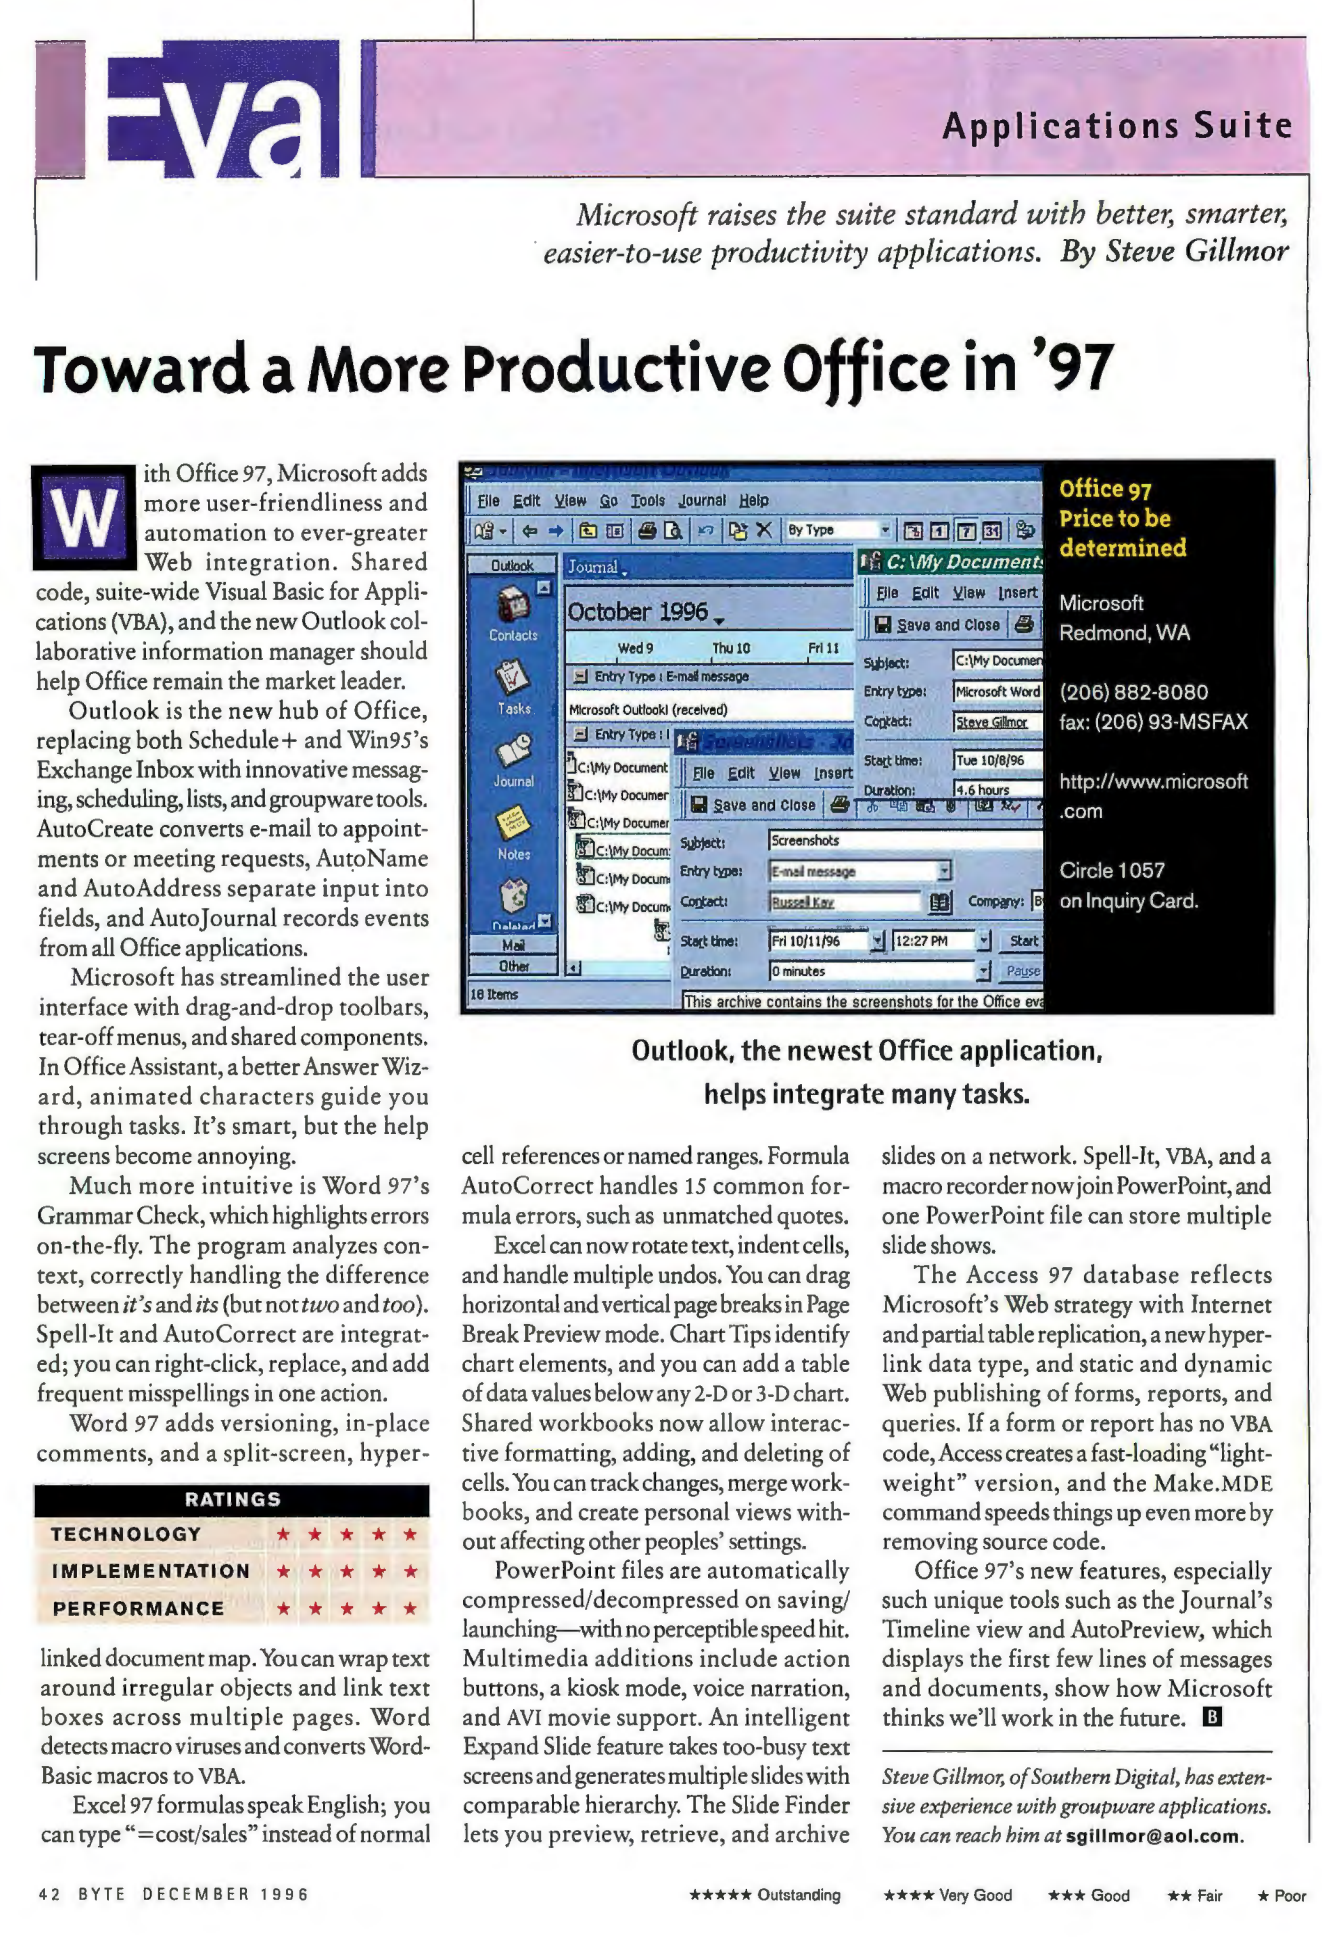 Byte Magazine review showing 5 stars across technology, implementation, performance)